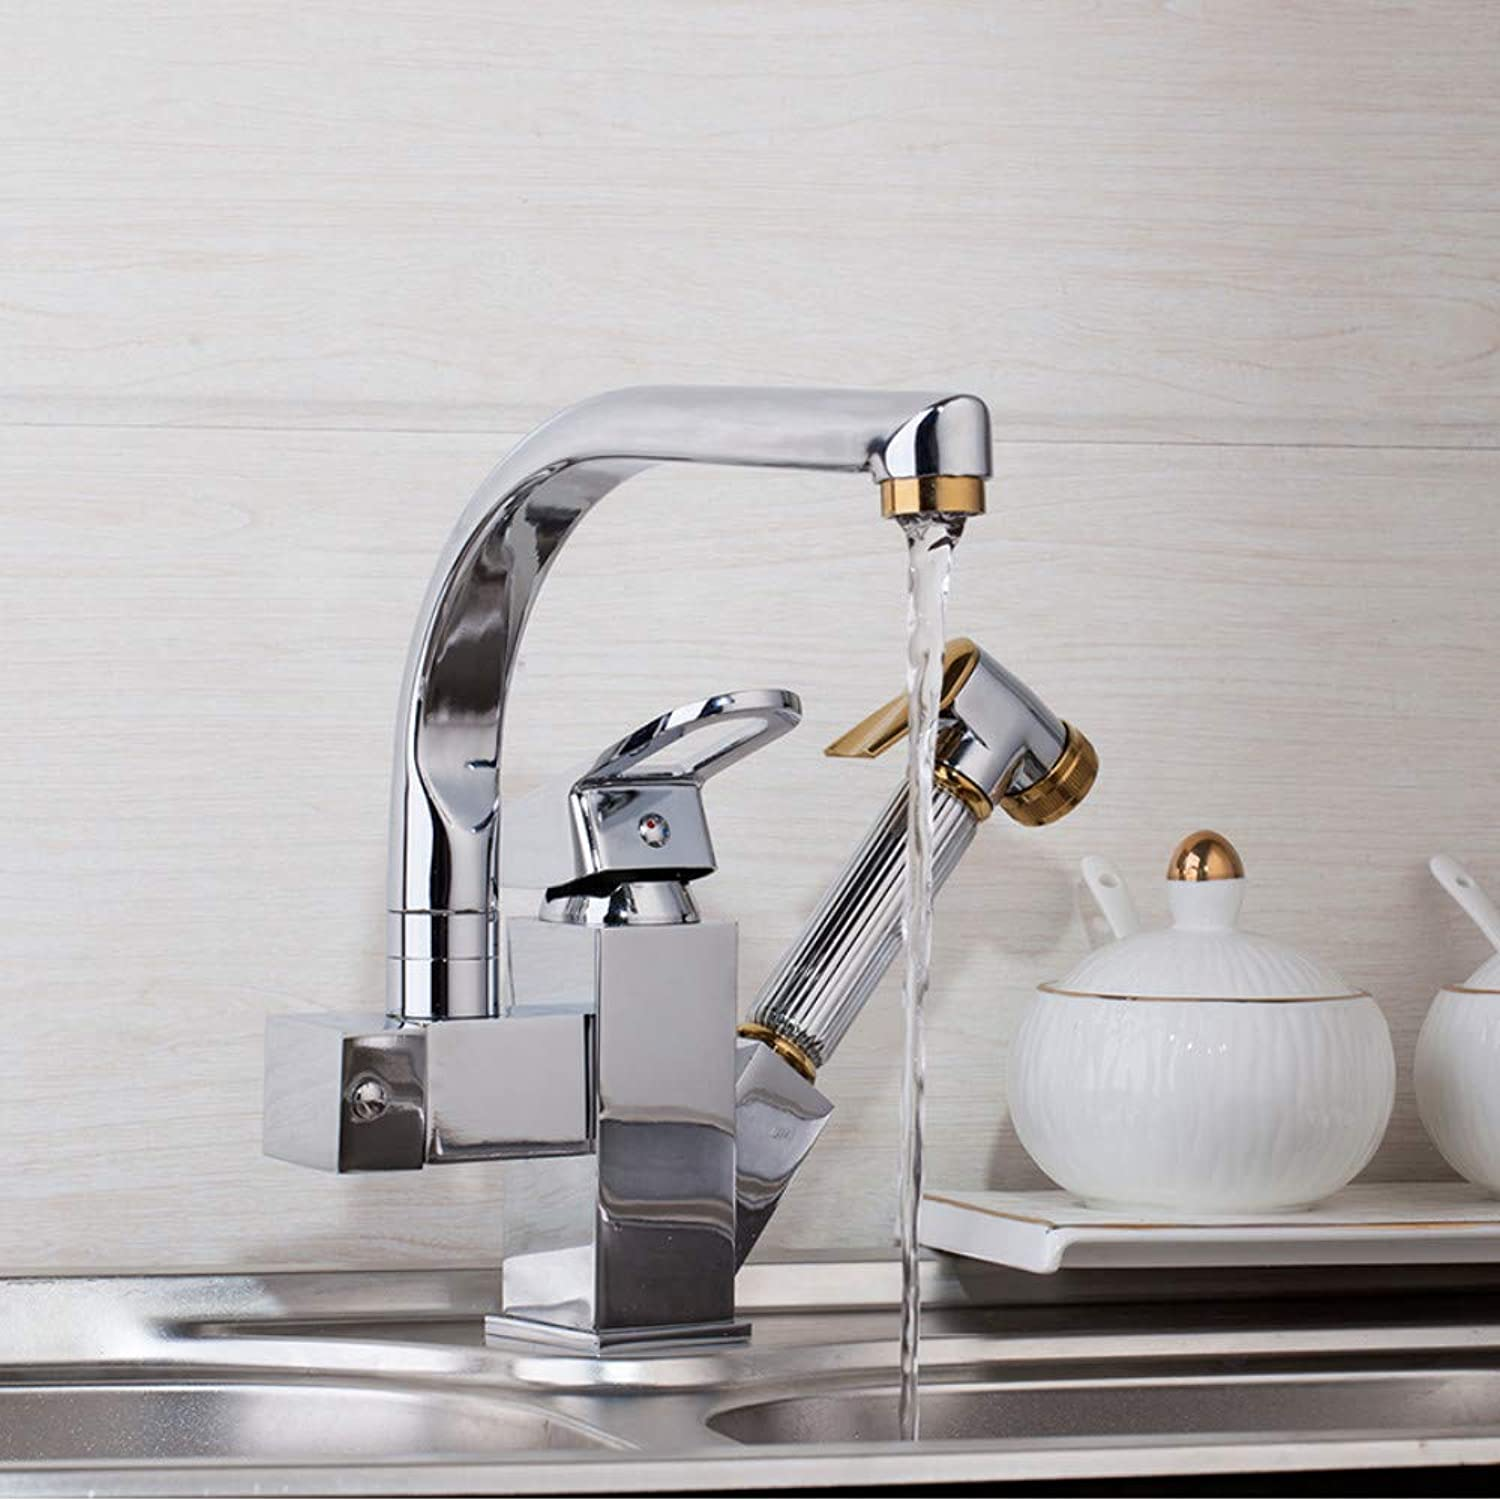 Lddpl Solid Brass Kitchen Mixer gold Polished Hot &Cold Kitchen Tap Single Hole Water Tap Kitchen Faucet